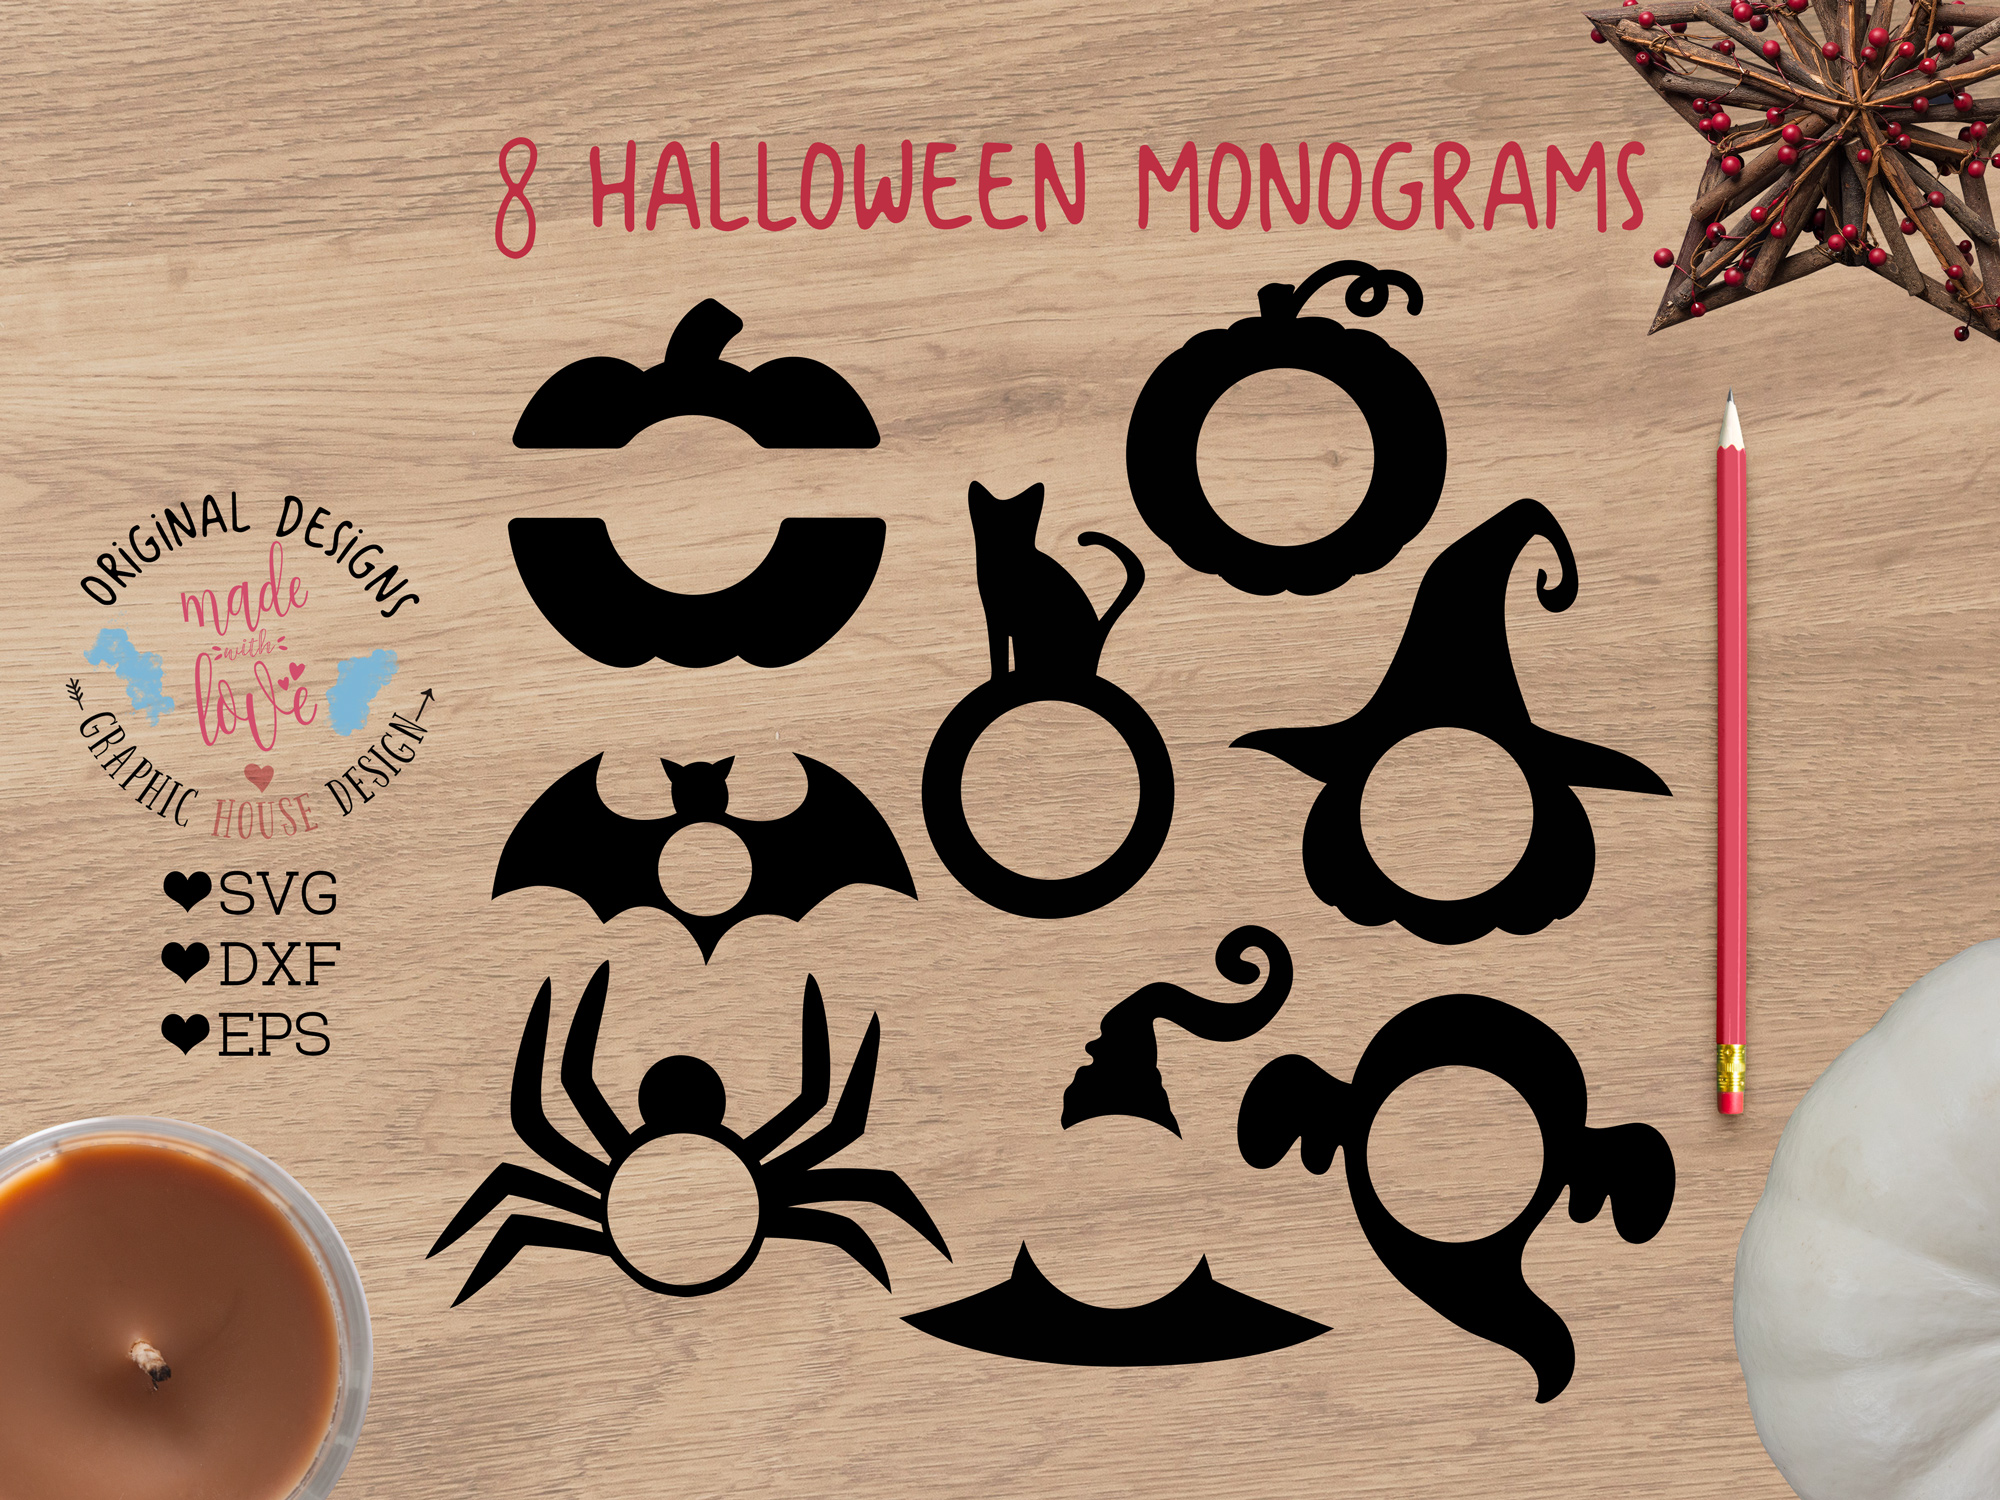 Download Free Halloween Monogram Frames Graphic By Graphichousedesign for Cricut Explore, Silhouette and other cutting machines.